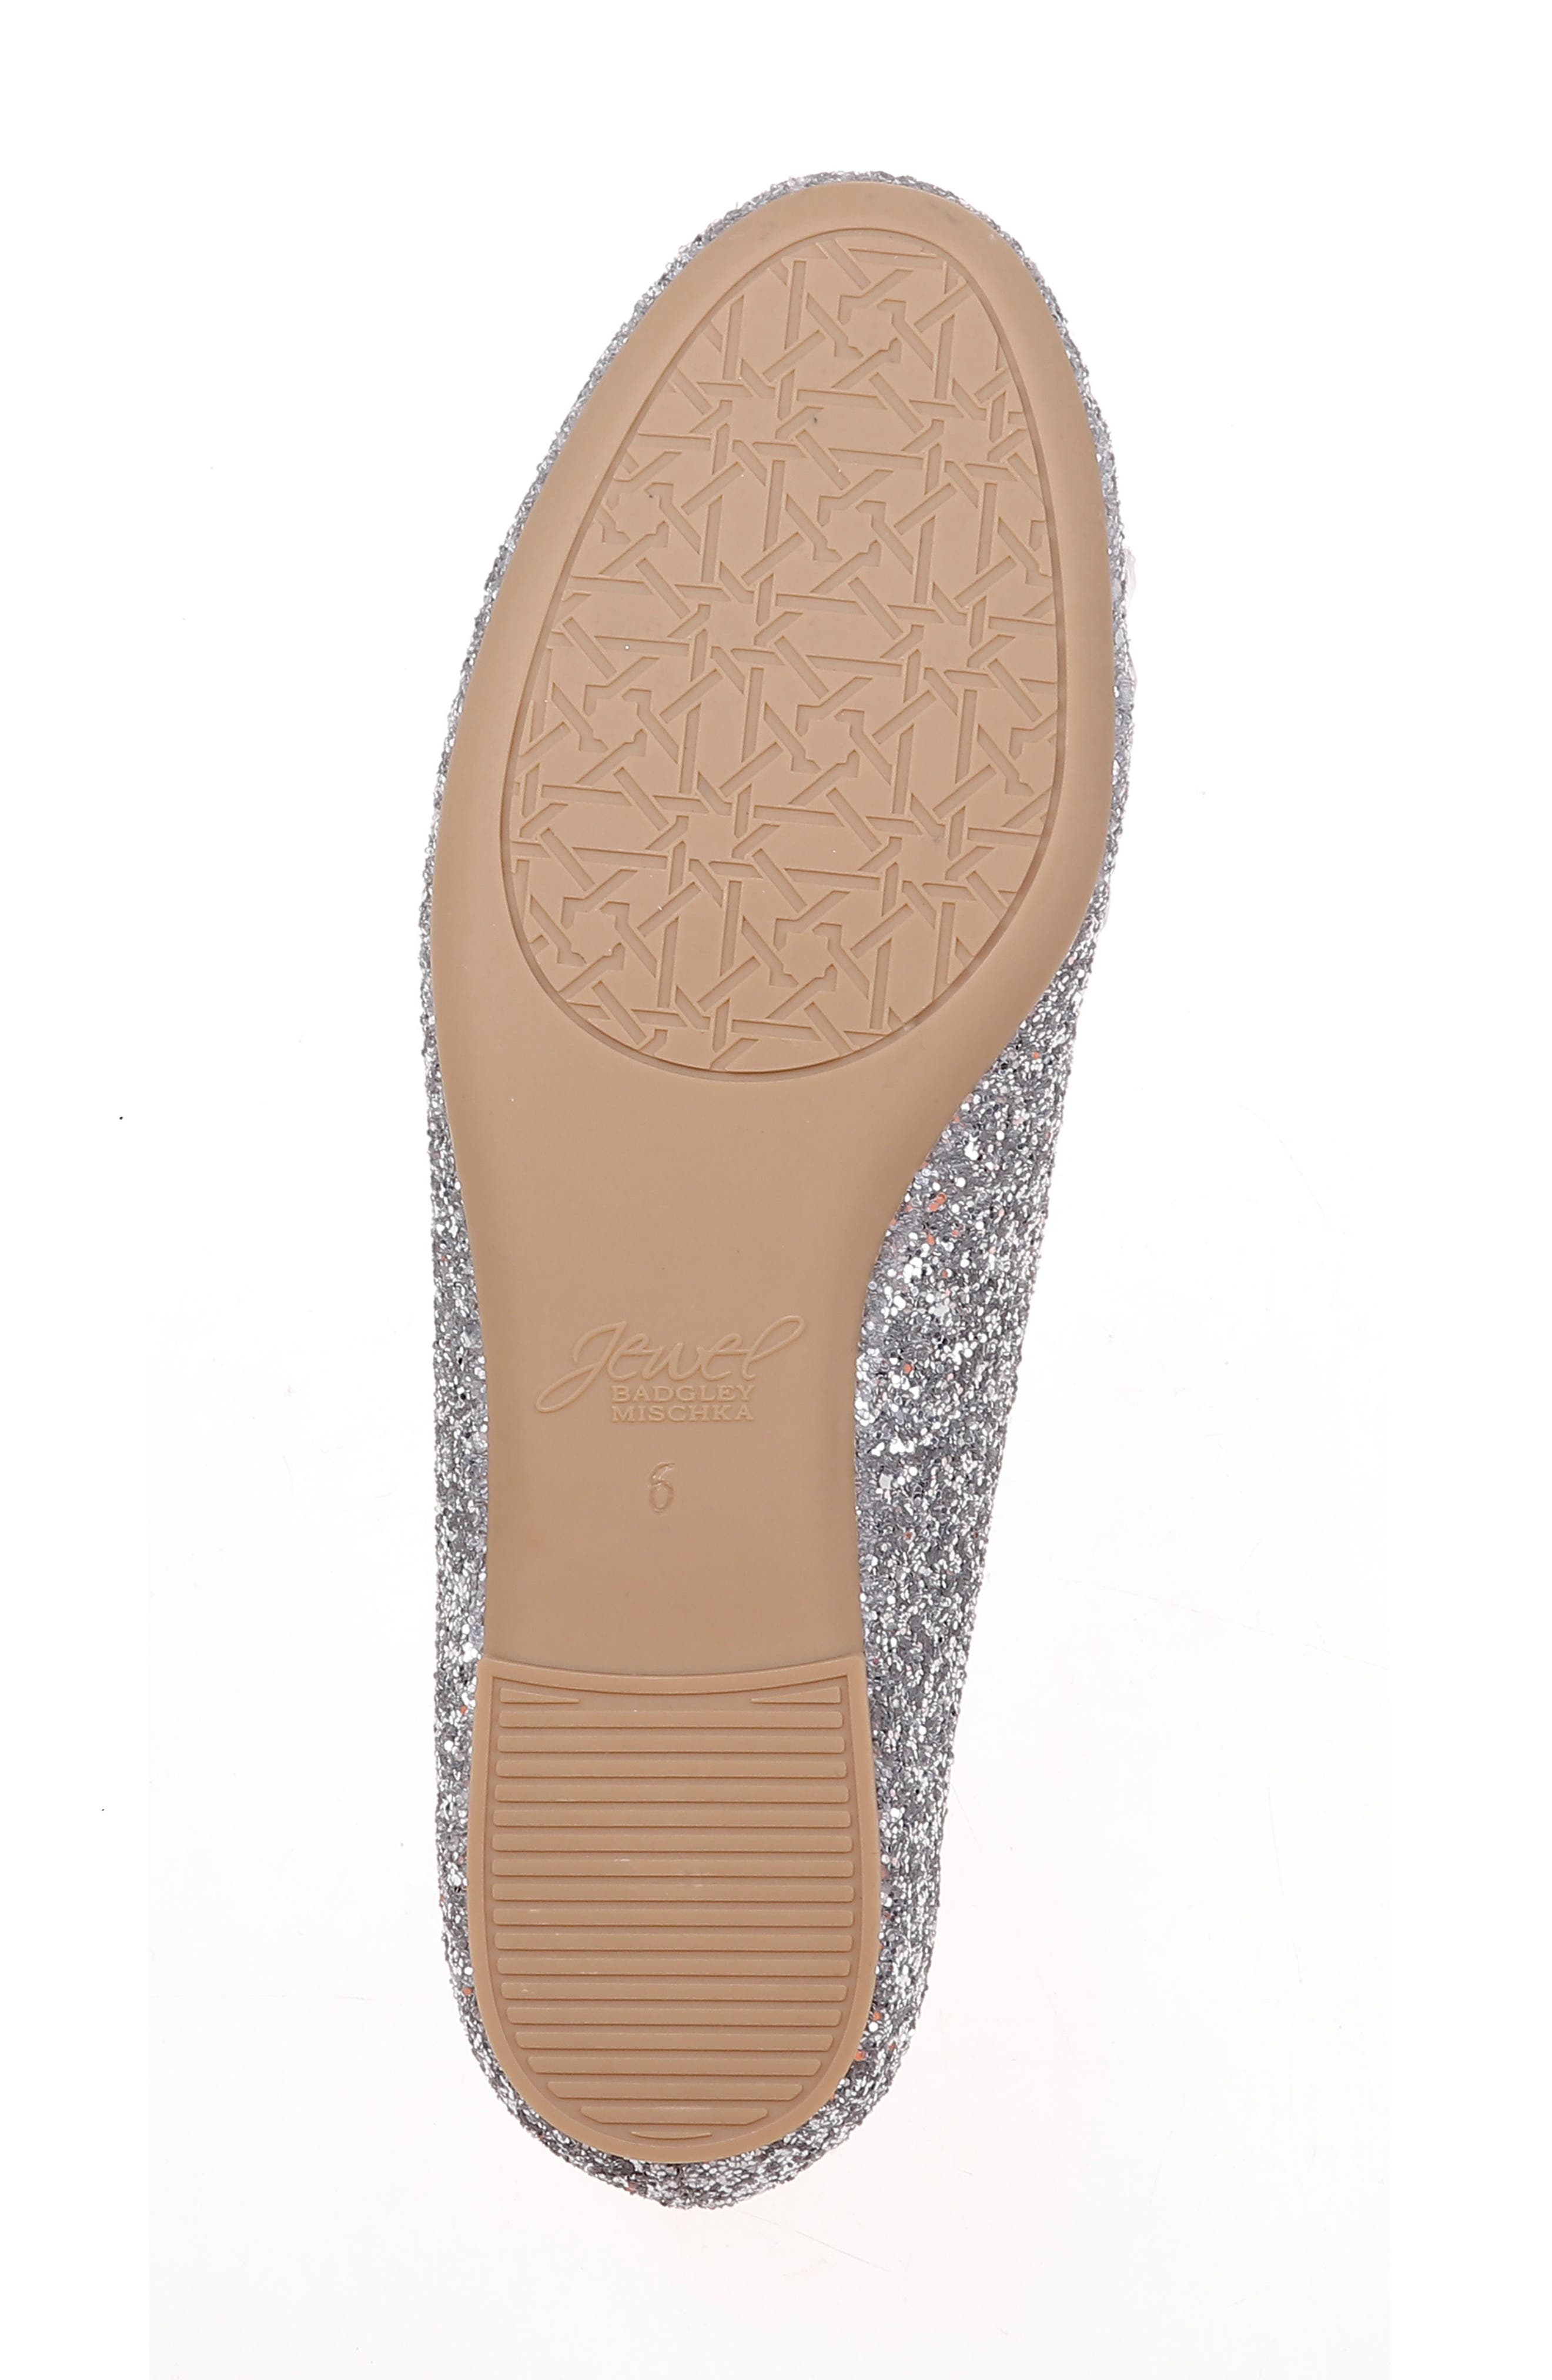 JEWEL BADGLEY MISCHKA, Mathilda Embellished Ballet Flat, Alternate thumbnail 6, color, SILVER GLITTER